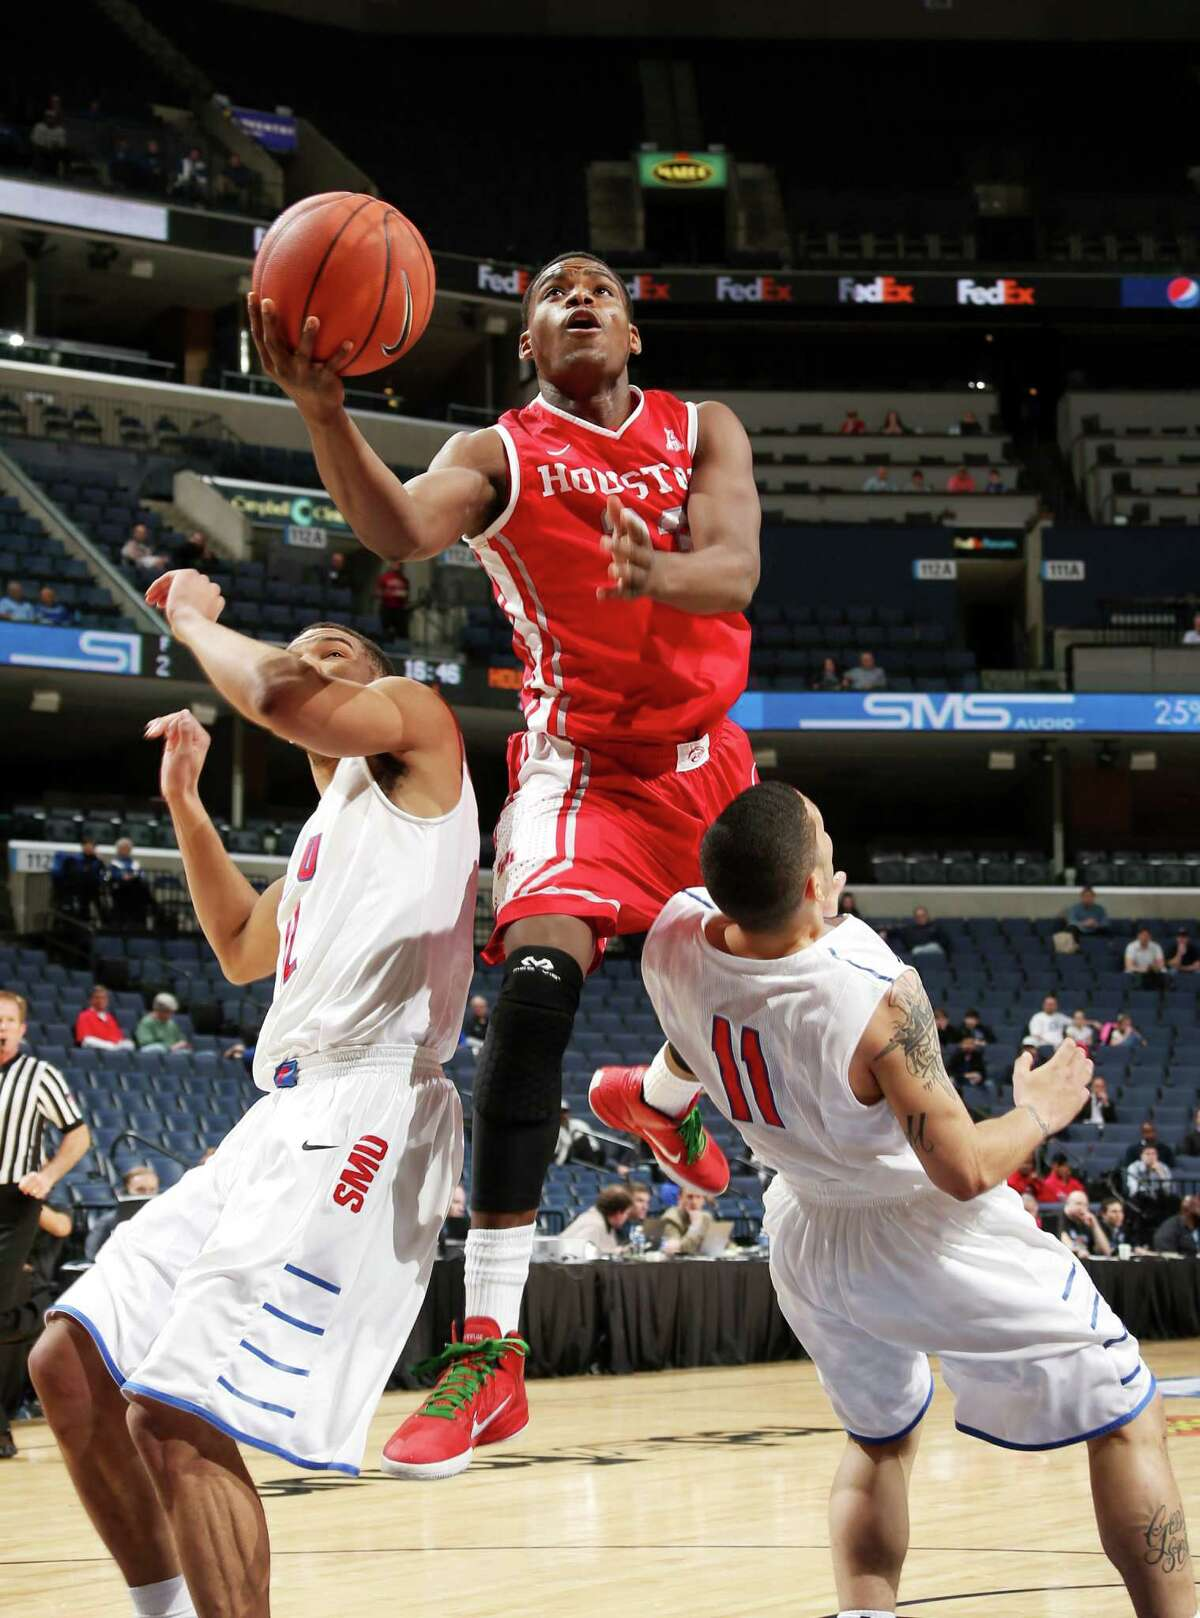 MEMPHIS, TN - MARCH 13: Danuel House #23 of the Houston Cougars drives to the basket against Nic Moore #11 of the SMU Mustangs during the quarterfinal round of the American Athletic Conference Tournament at FedExForum on March 13, 2014 in Memphis, Tennessee.